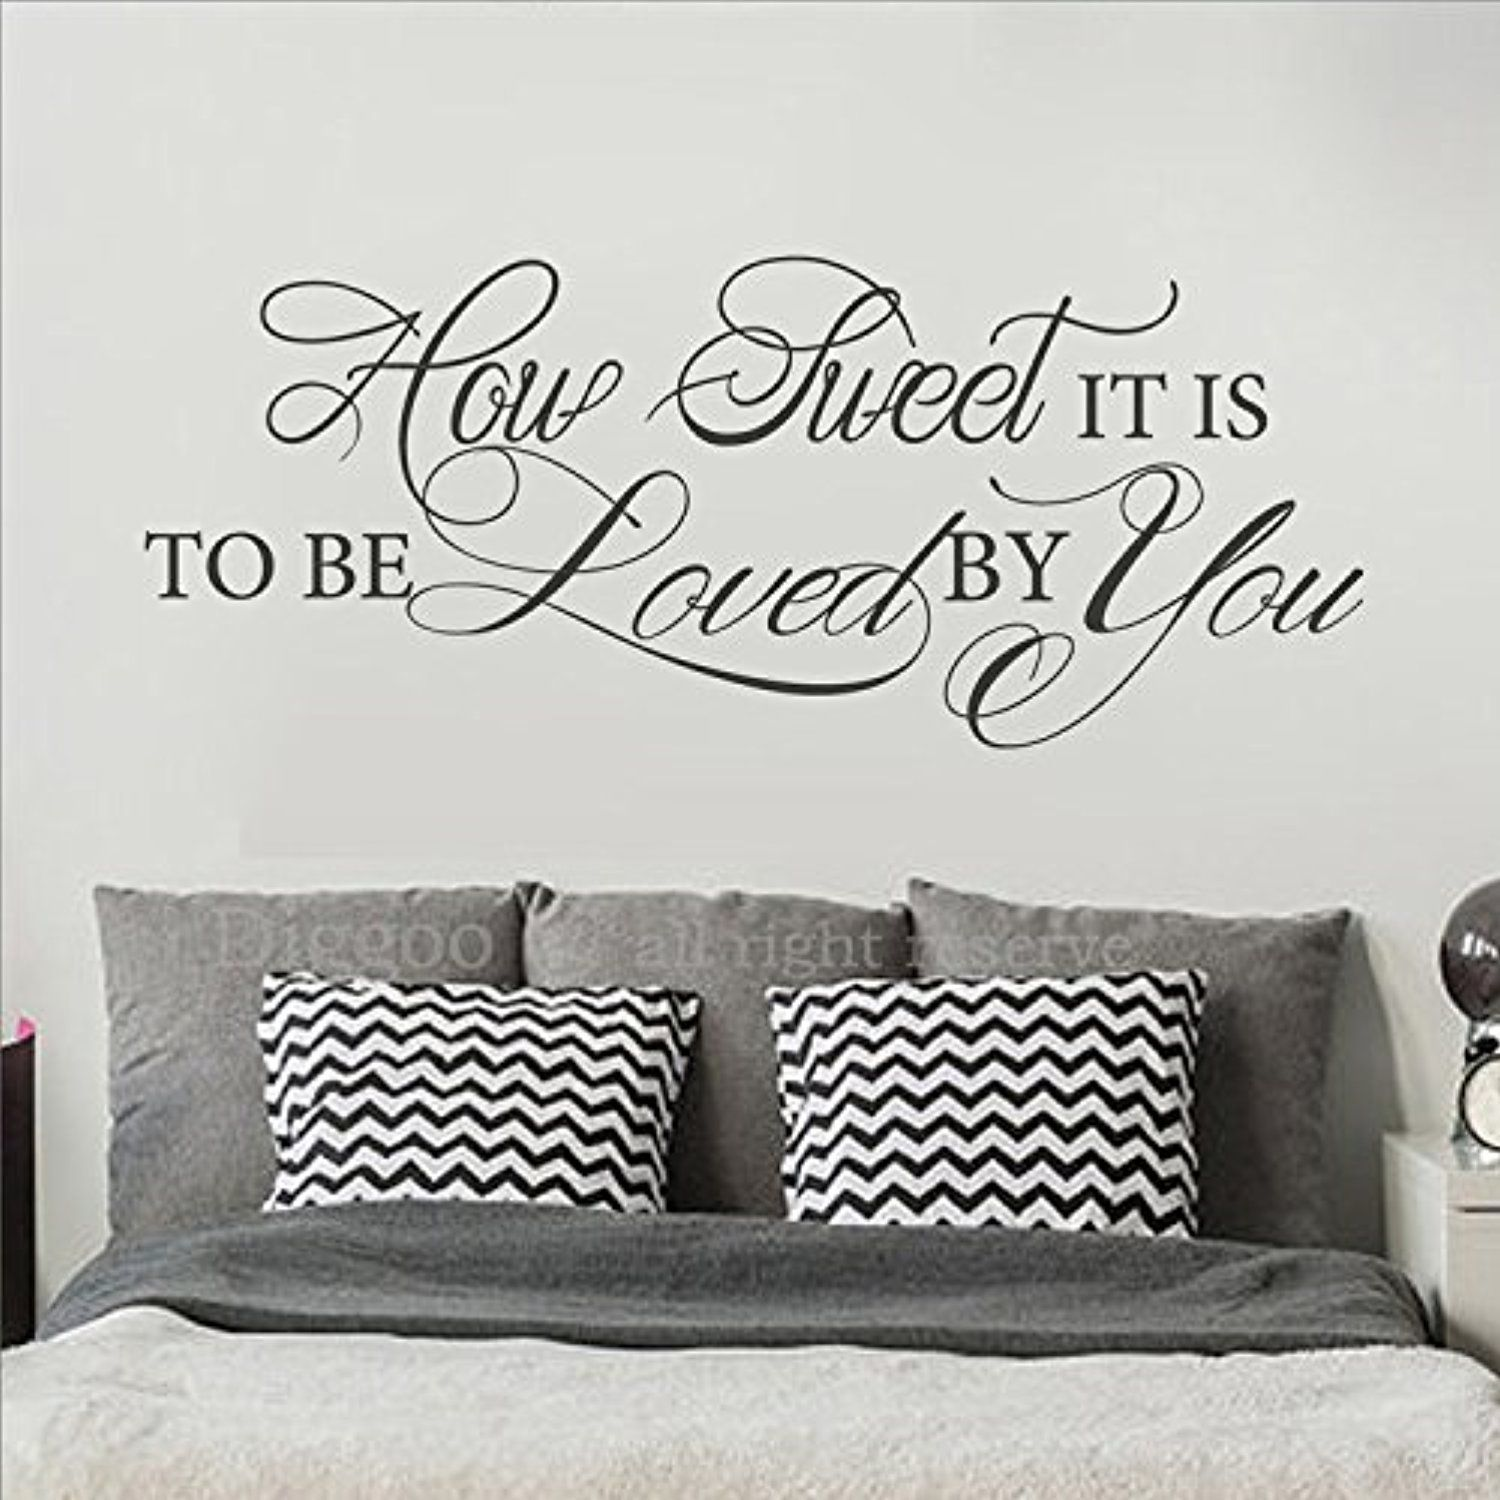 How sweet it is to be loved by you bedroom wall decor family home